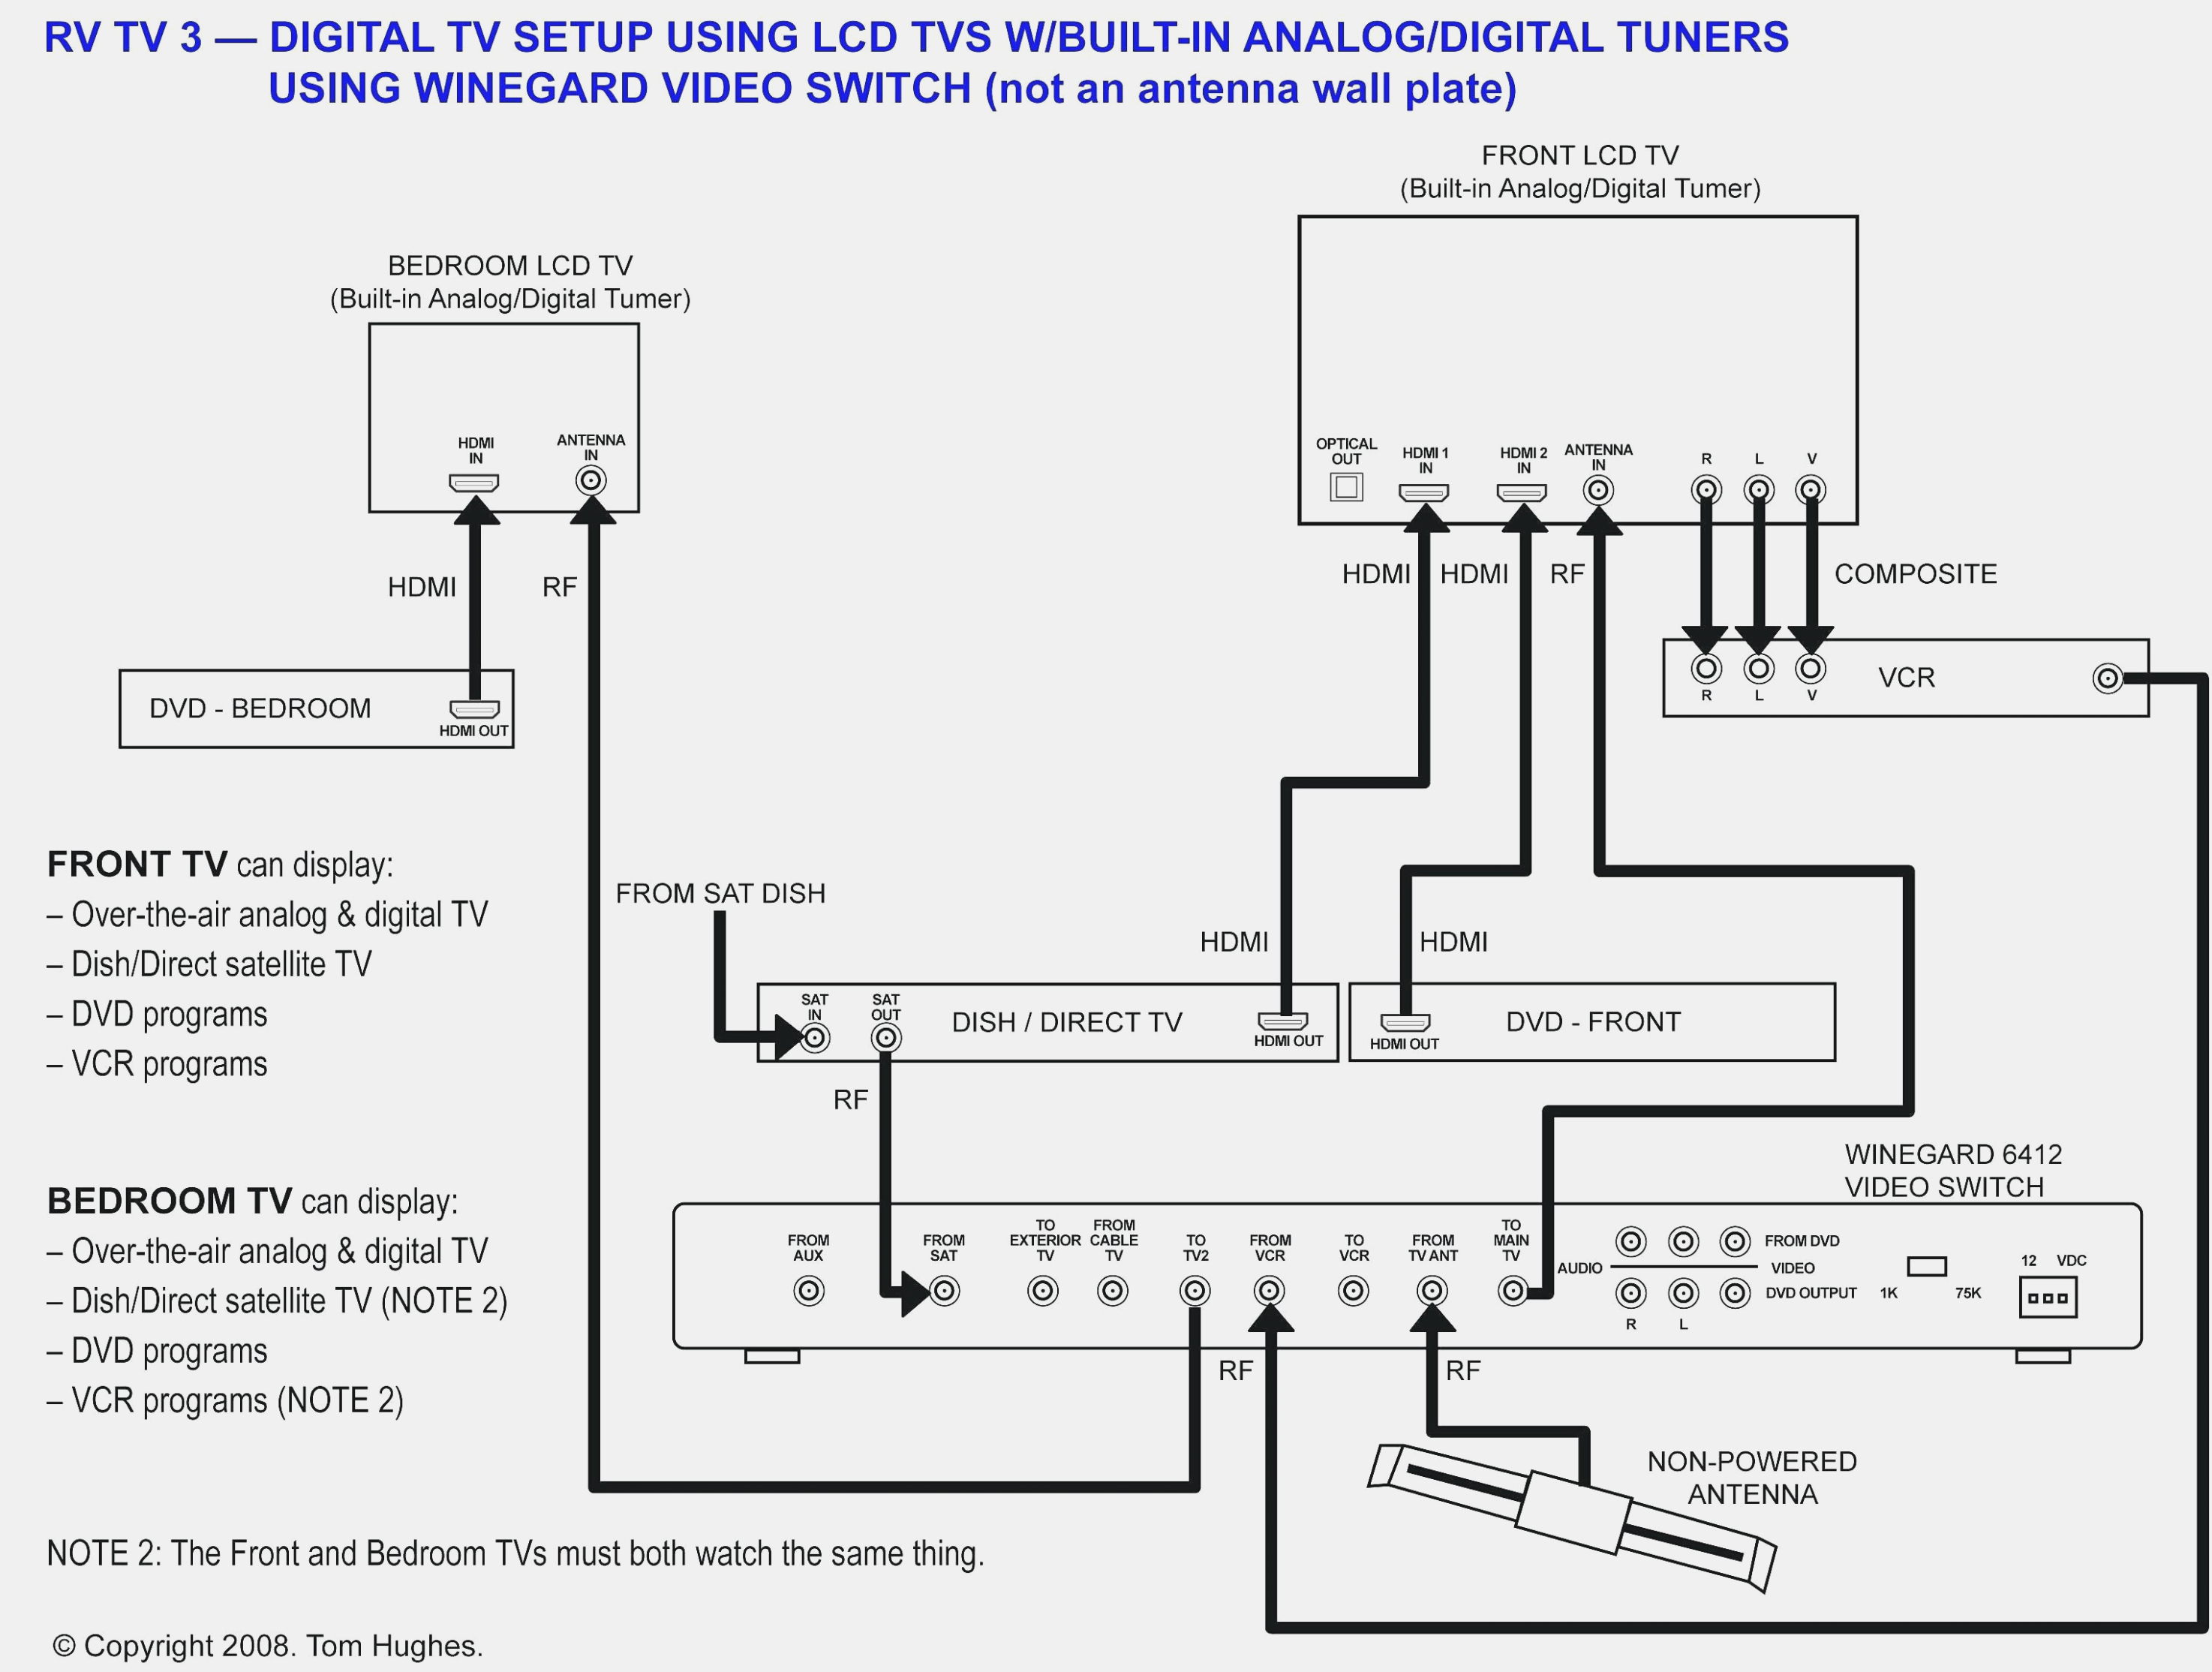 jayco seneca wiring diagram everything wiring diagramjayco seneca wiring diagram wiring diagram gp 2007 jayco seneca wiring diagram jayco fifth wheel wiring